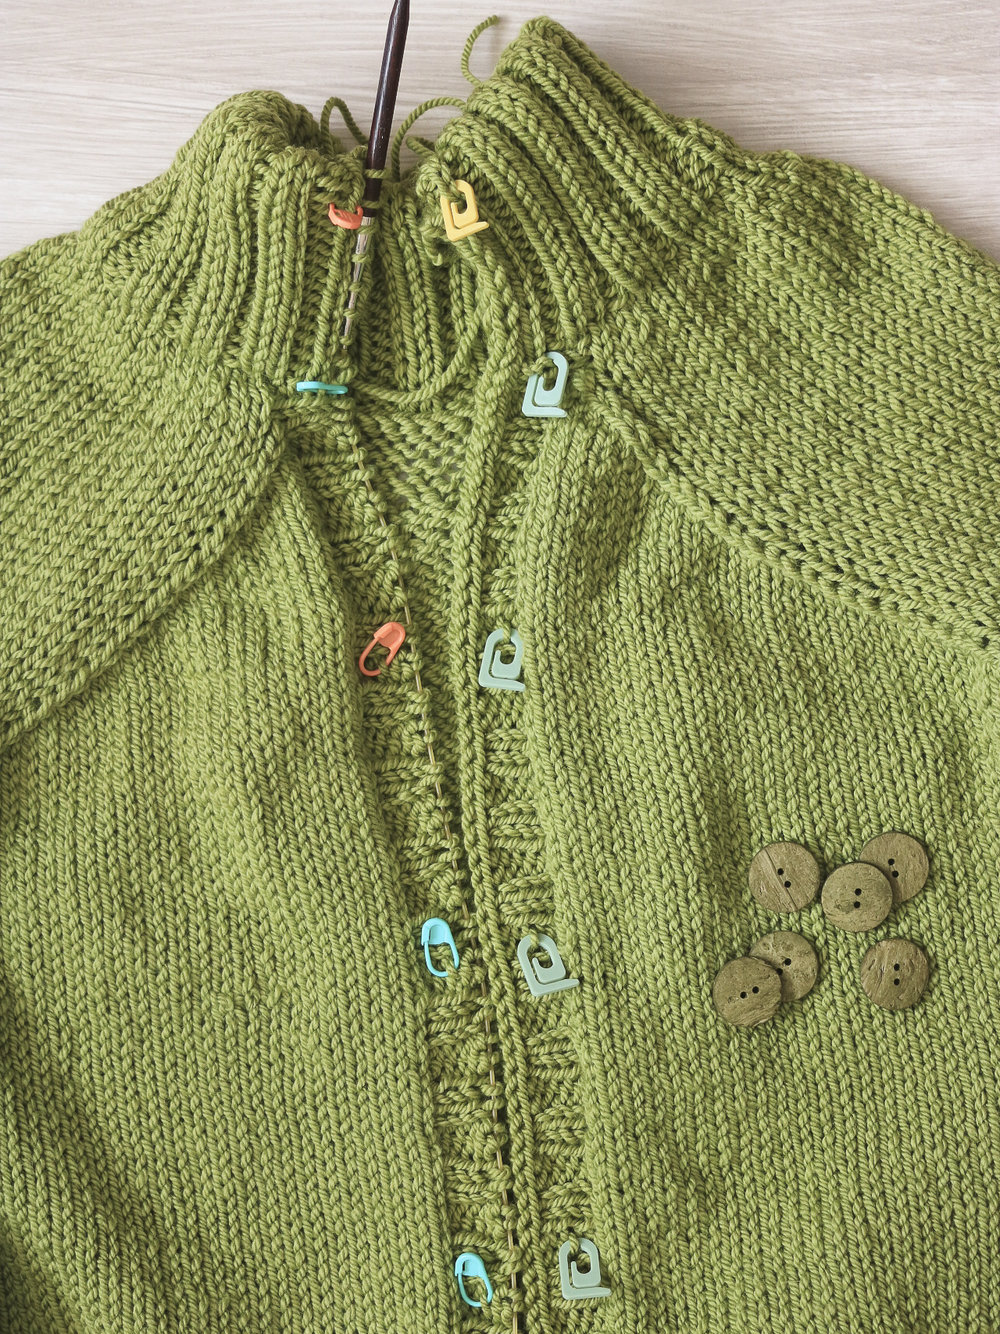 carbeth_cardigan_buttonholes_p.jpg